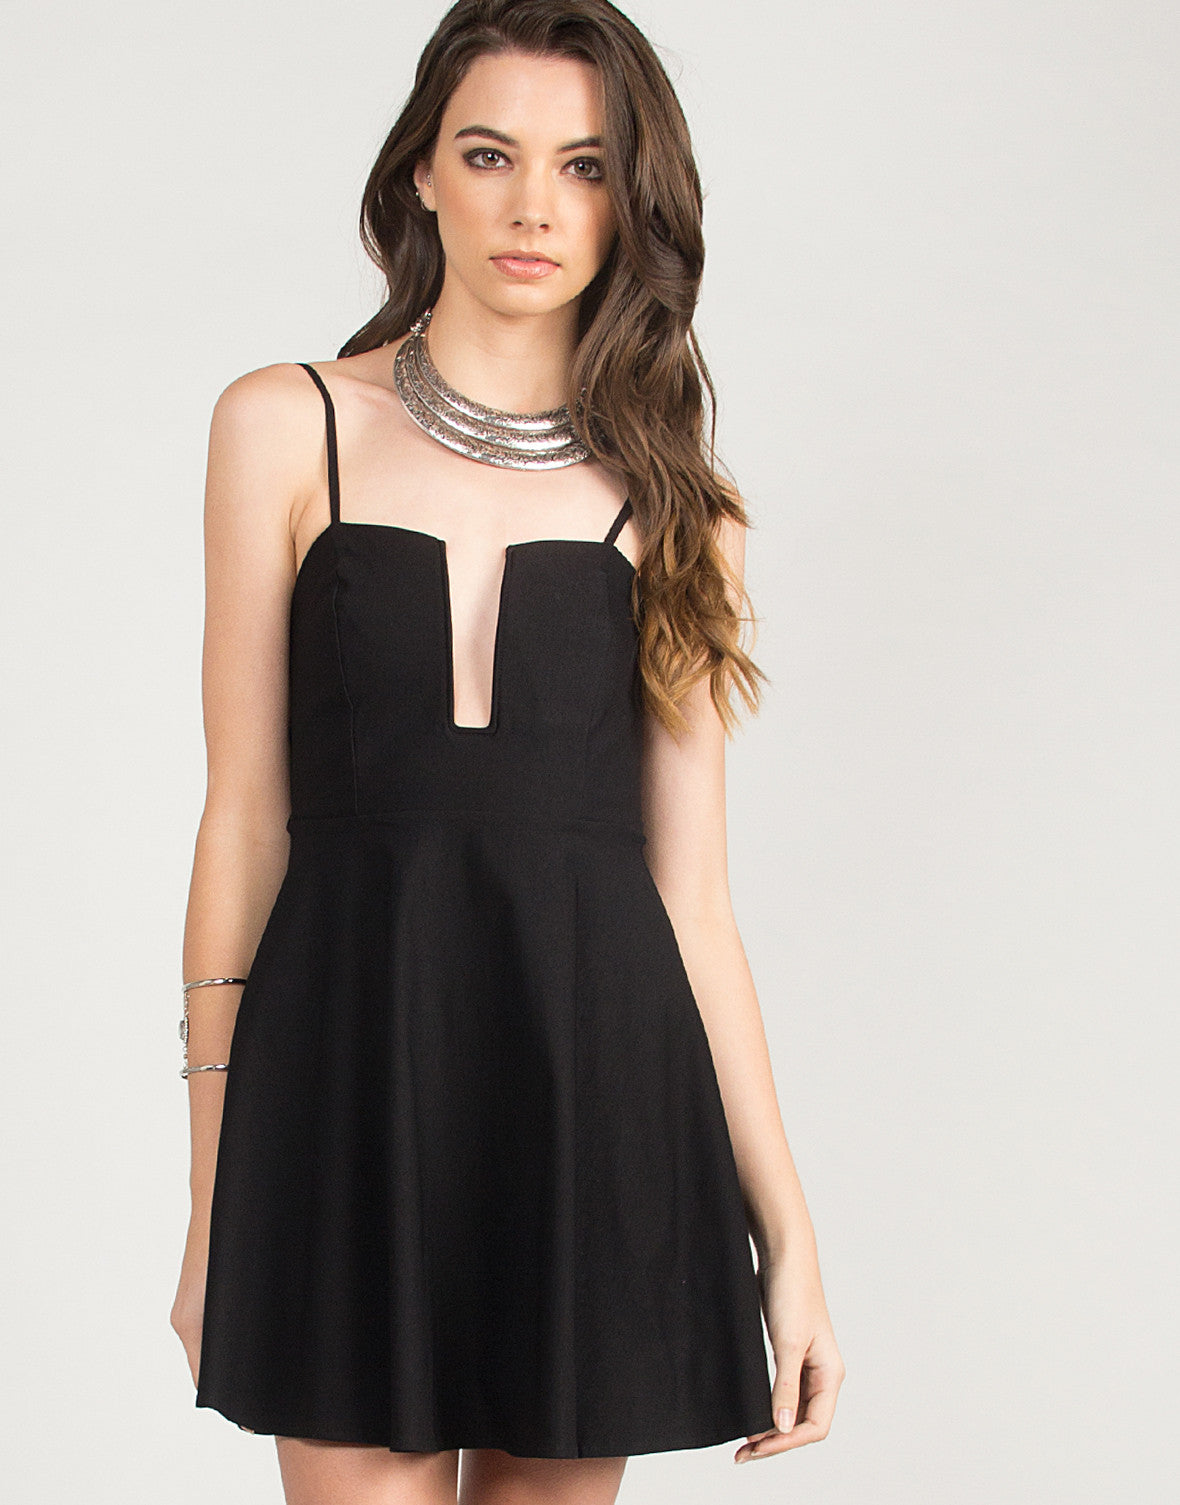 Fit and Flare Wire Dress - Black - Small